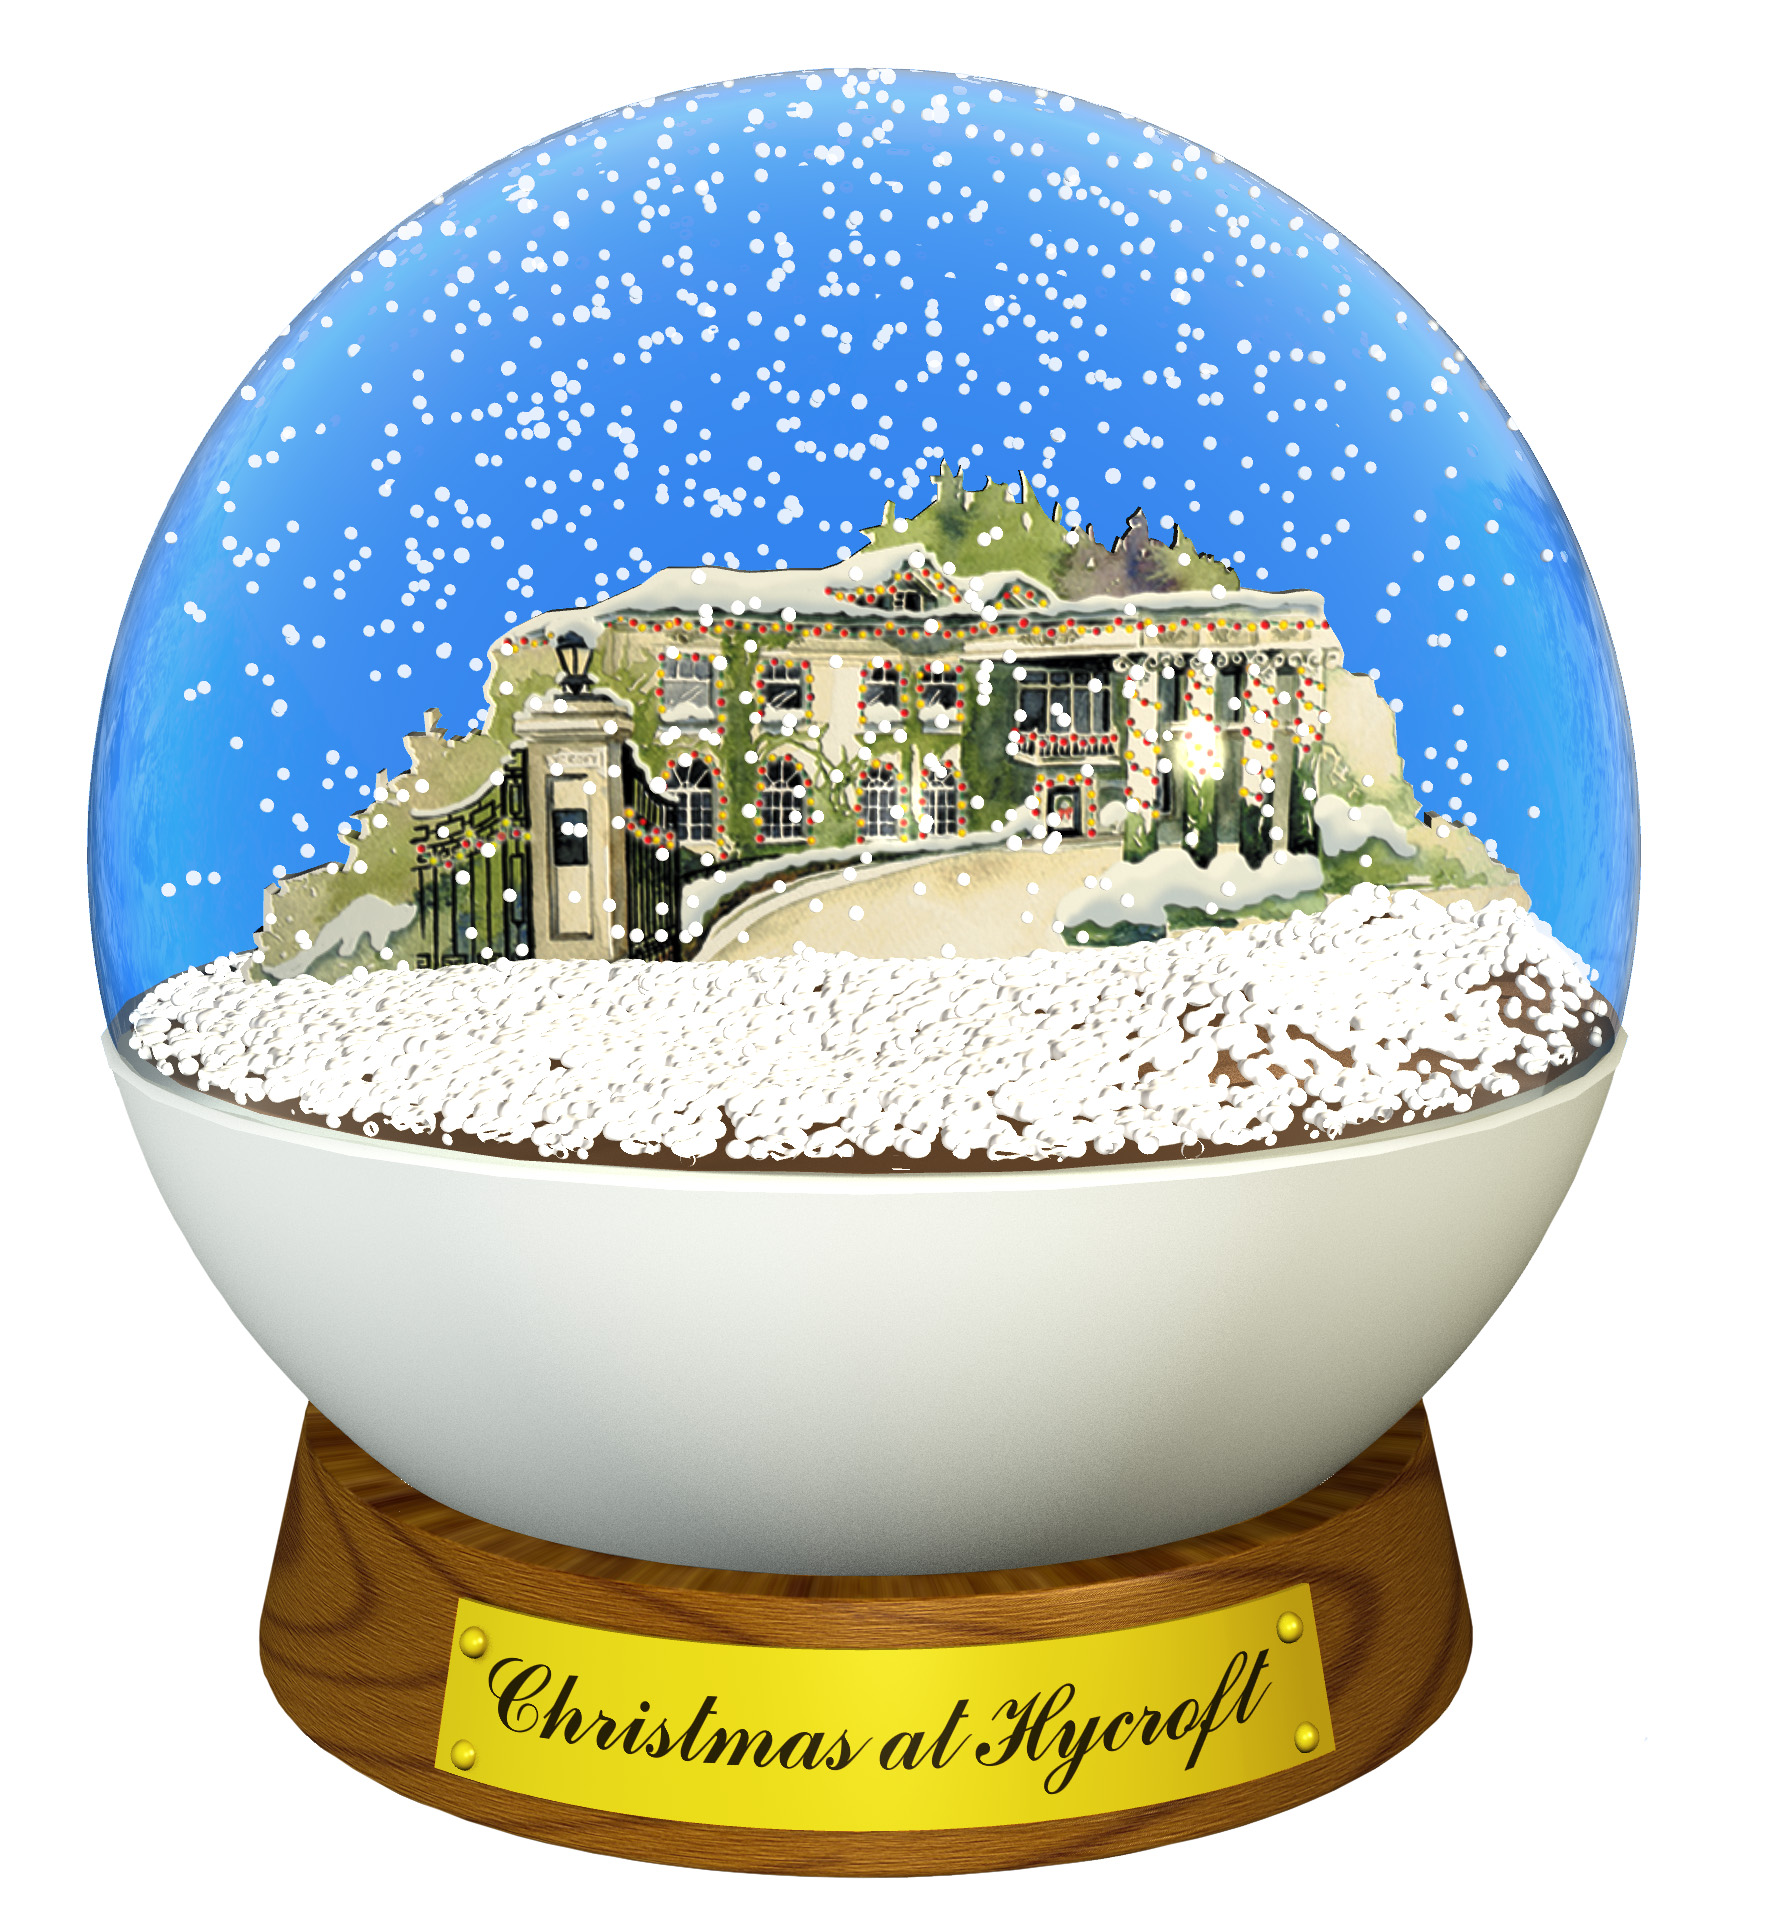 uwc CH snowglobe graphic from 20 20